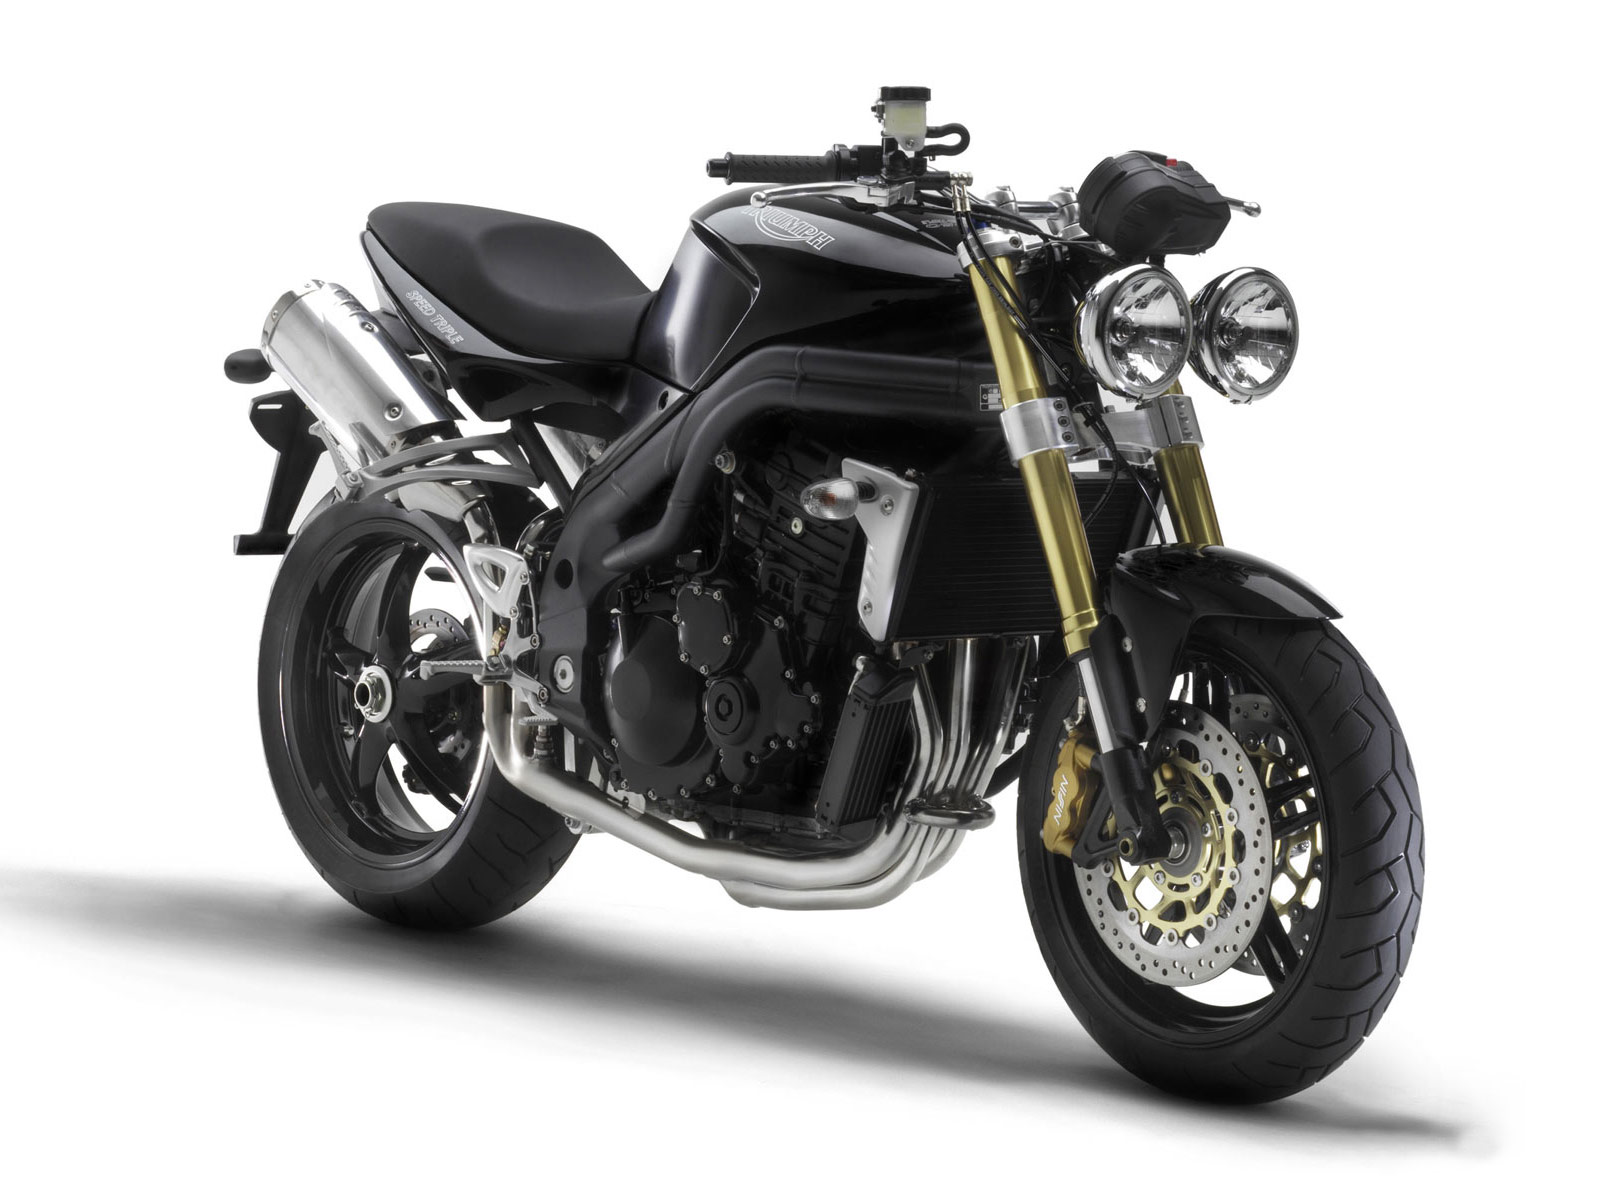 motorcycle insurance. 2005 triumph speed triple wallpaper